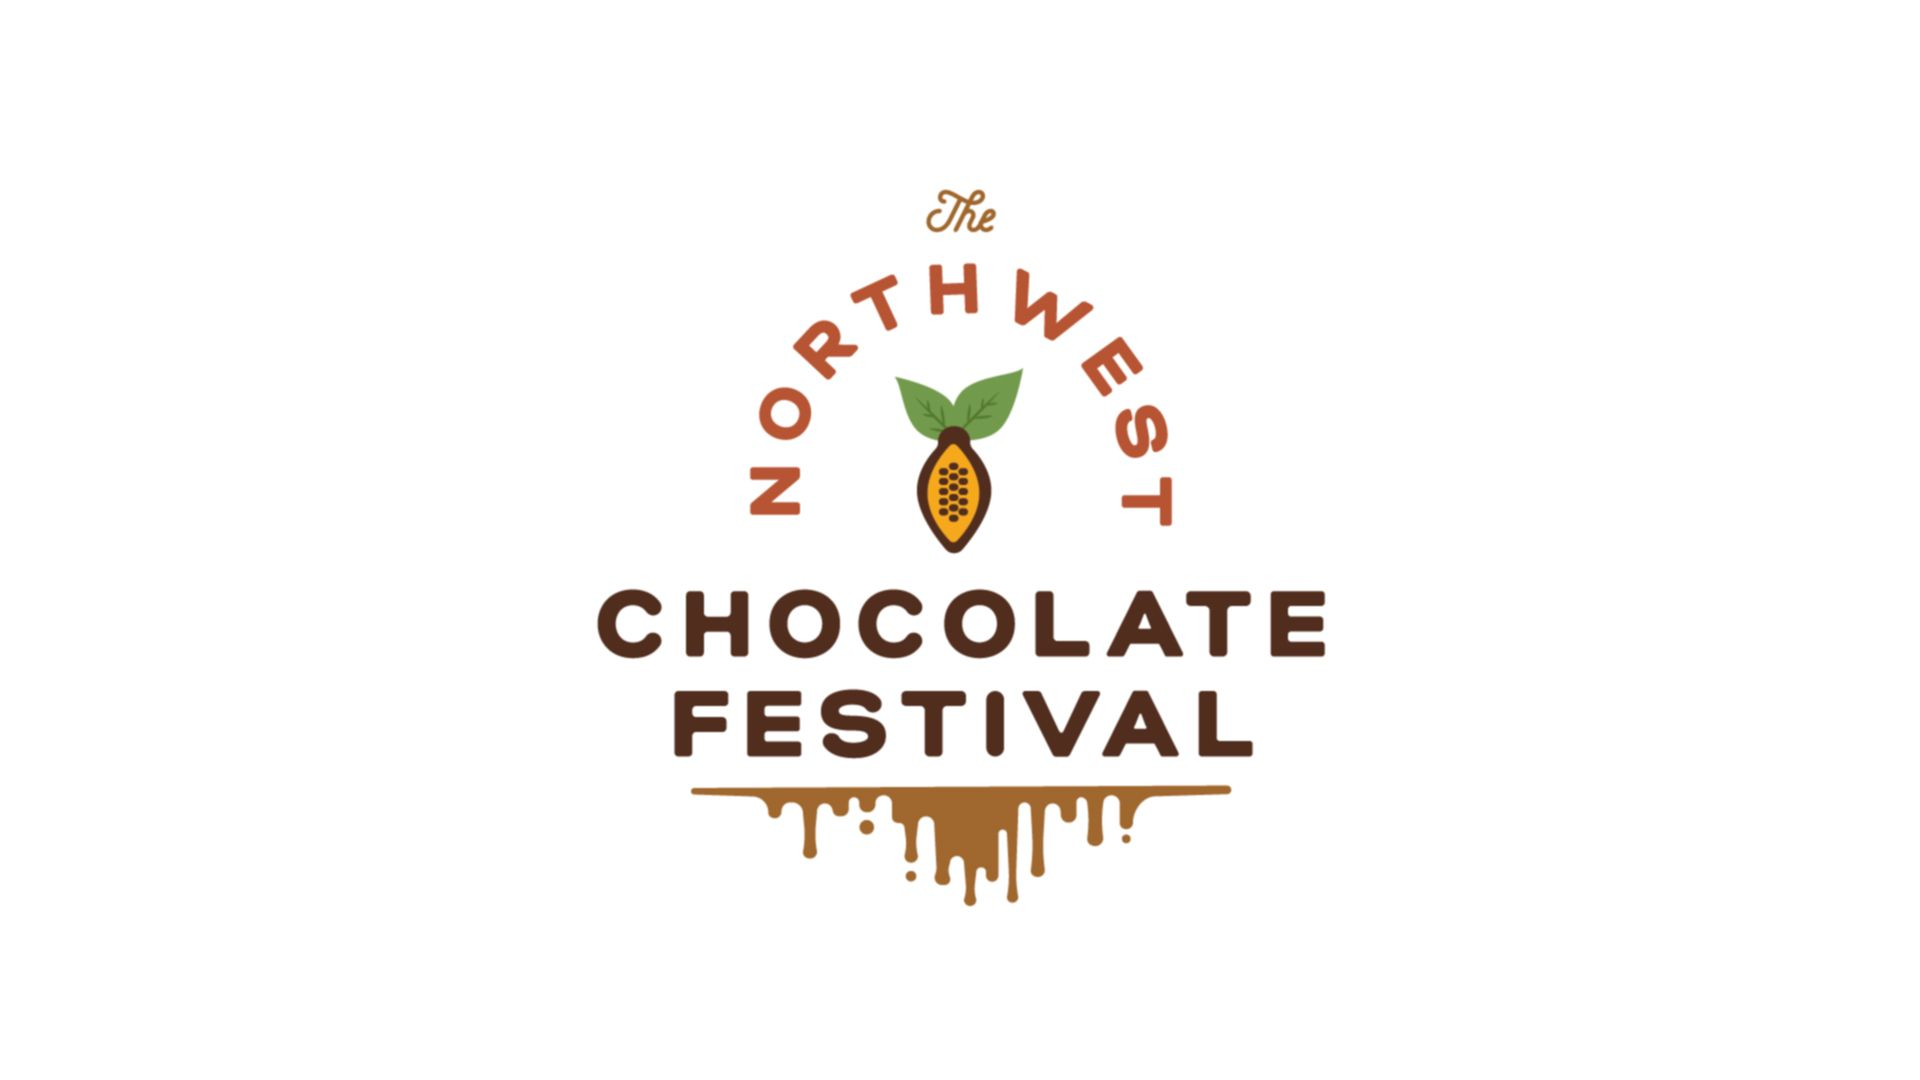 2021 NW Chocolate Festival Dates Announced